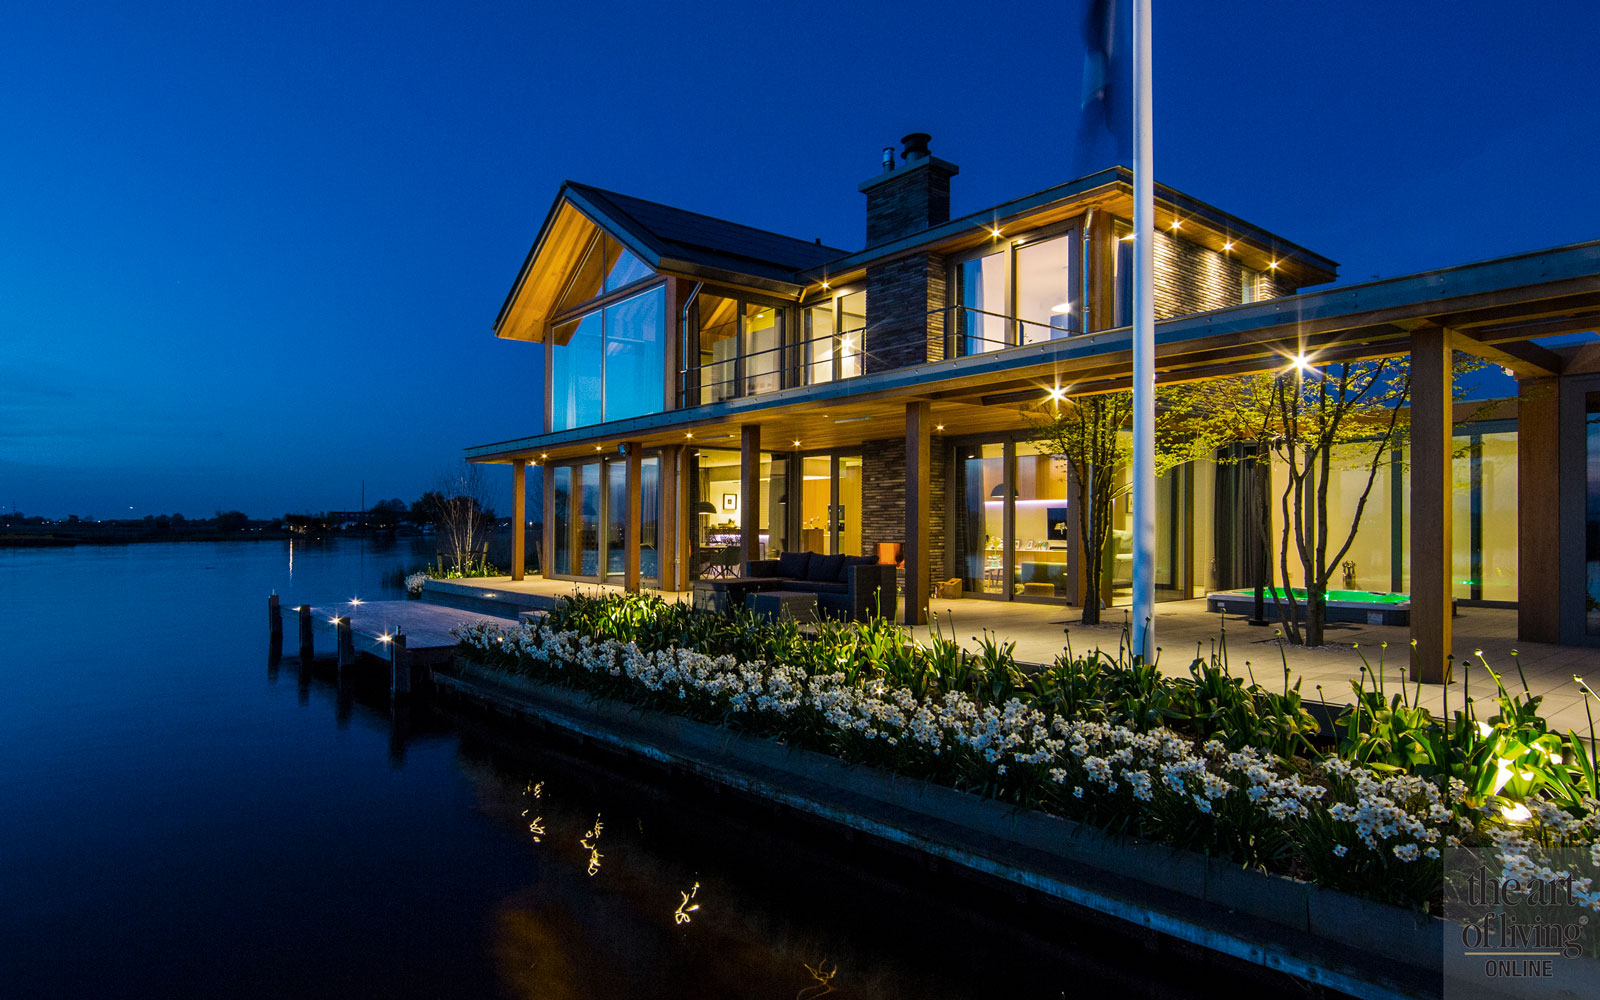 Jacuzzi, Whirlpool, bad, American Lakehouse, the Art of Living